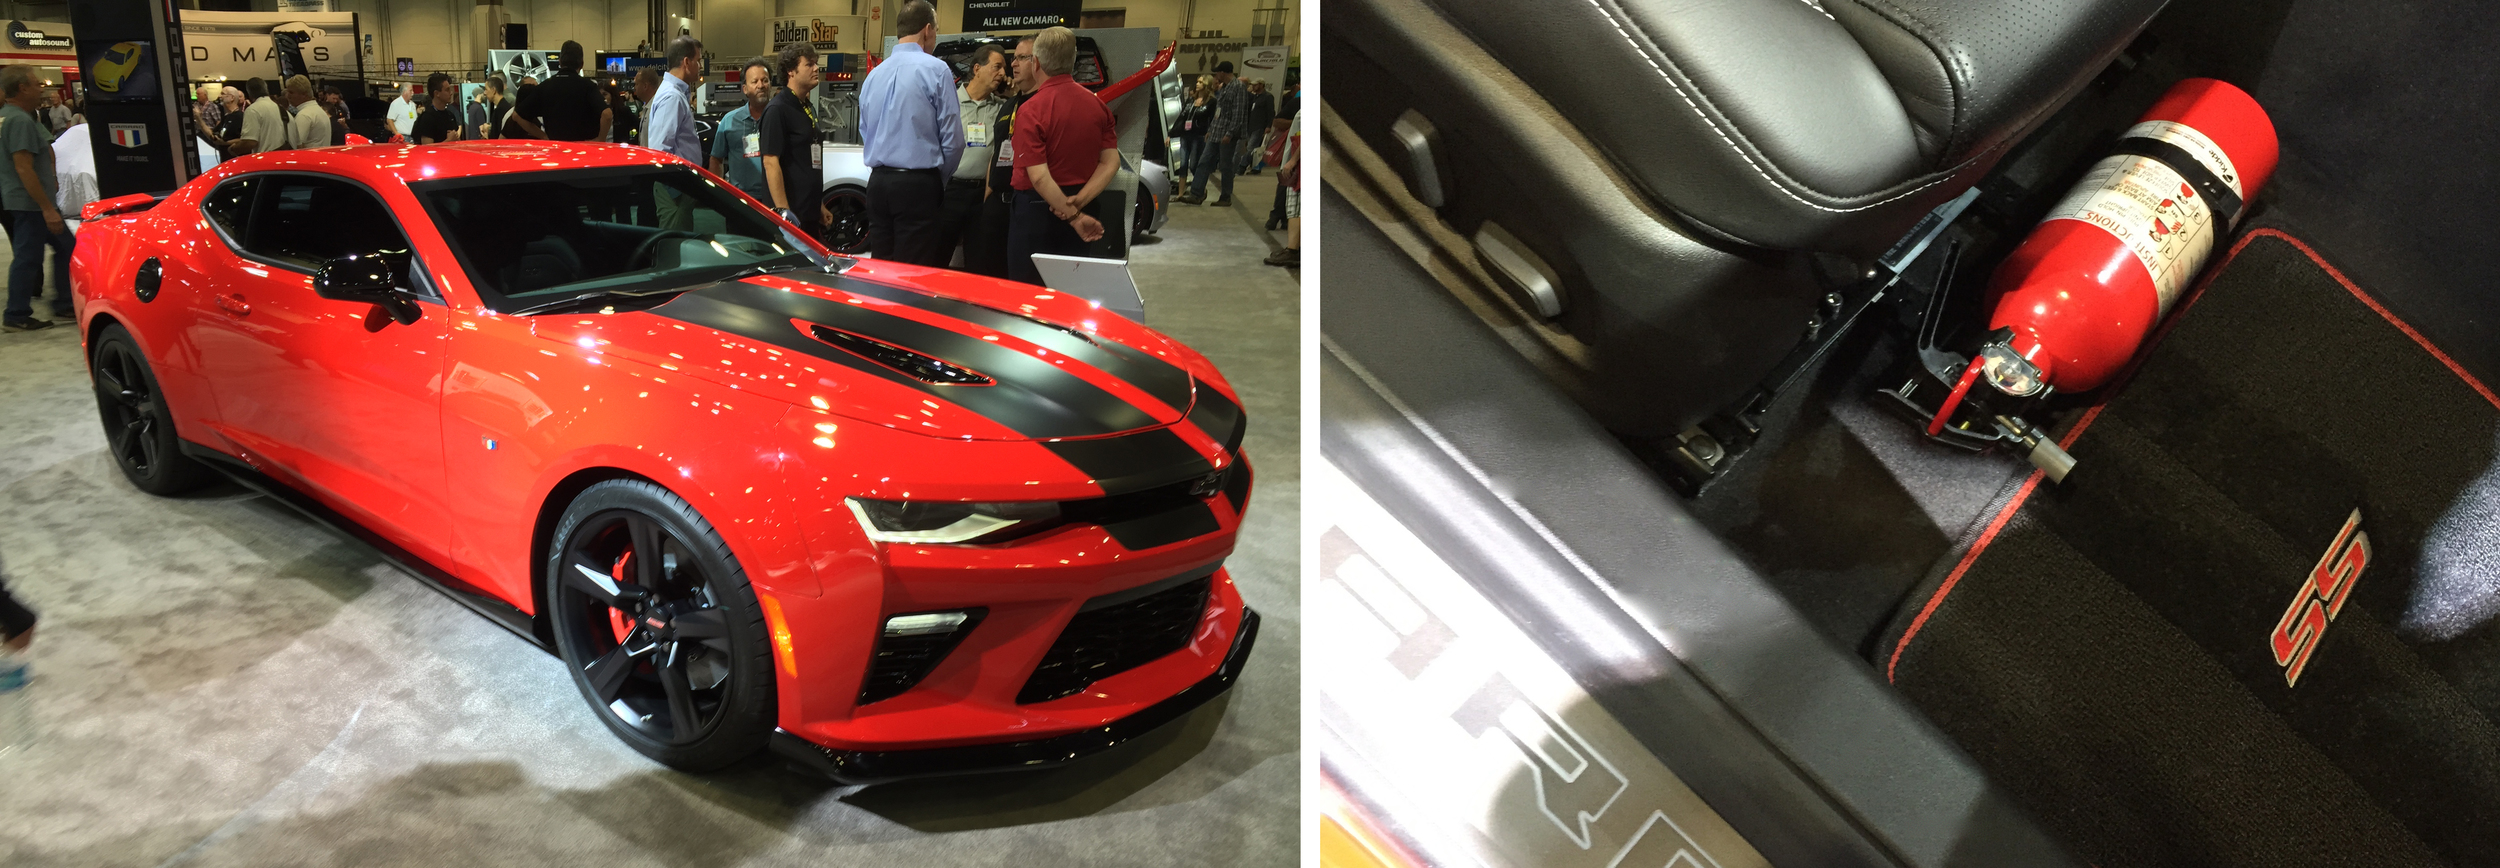 2016 Camaro on Chevrolet booth at SEMA